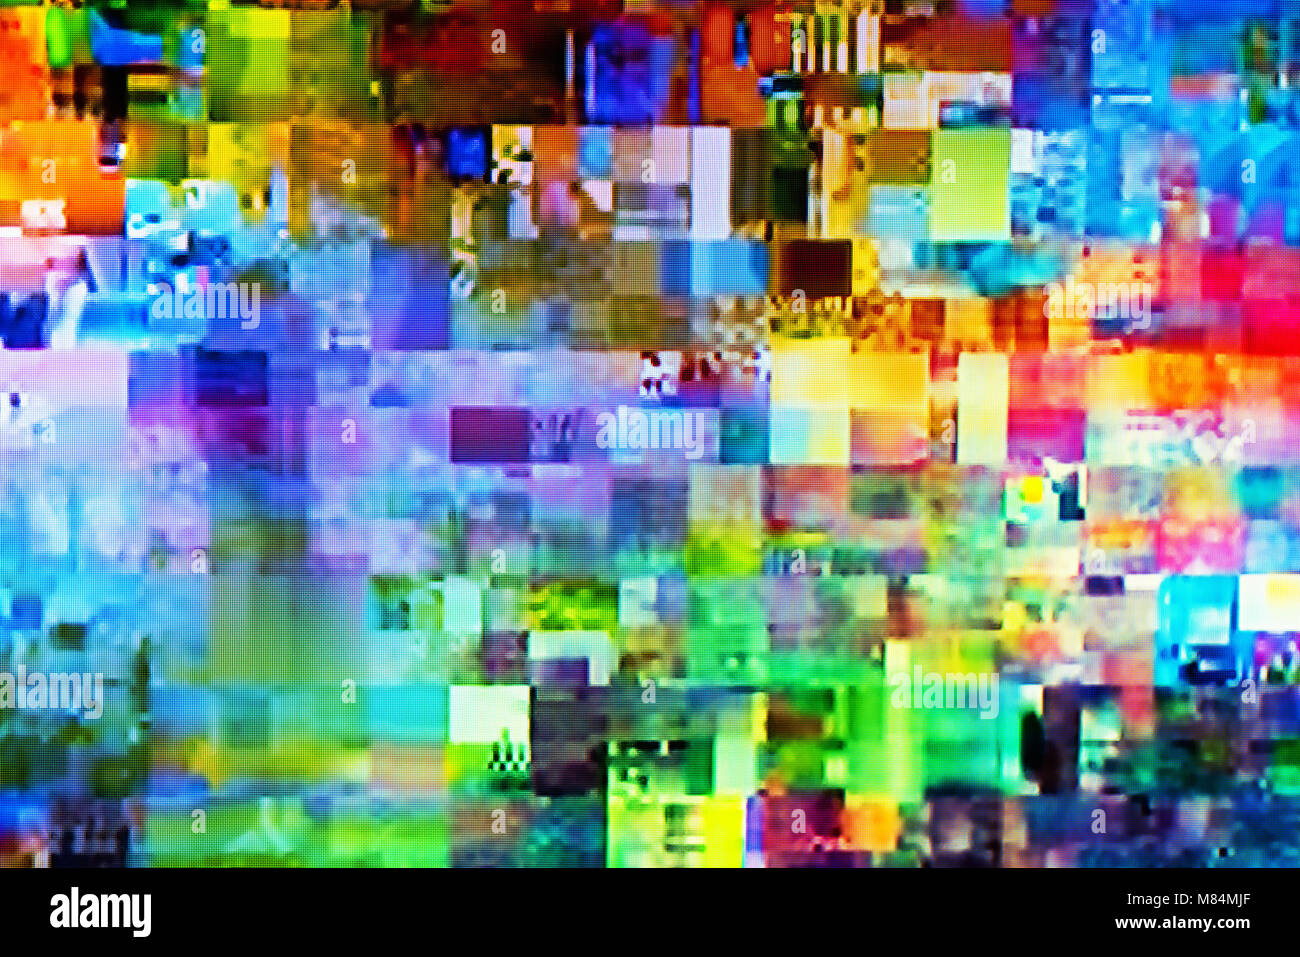 Tv Digitale La Tv Digitale Glitch Sullo Schermo Del Televisore Con Piazze